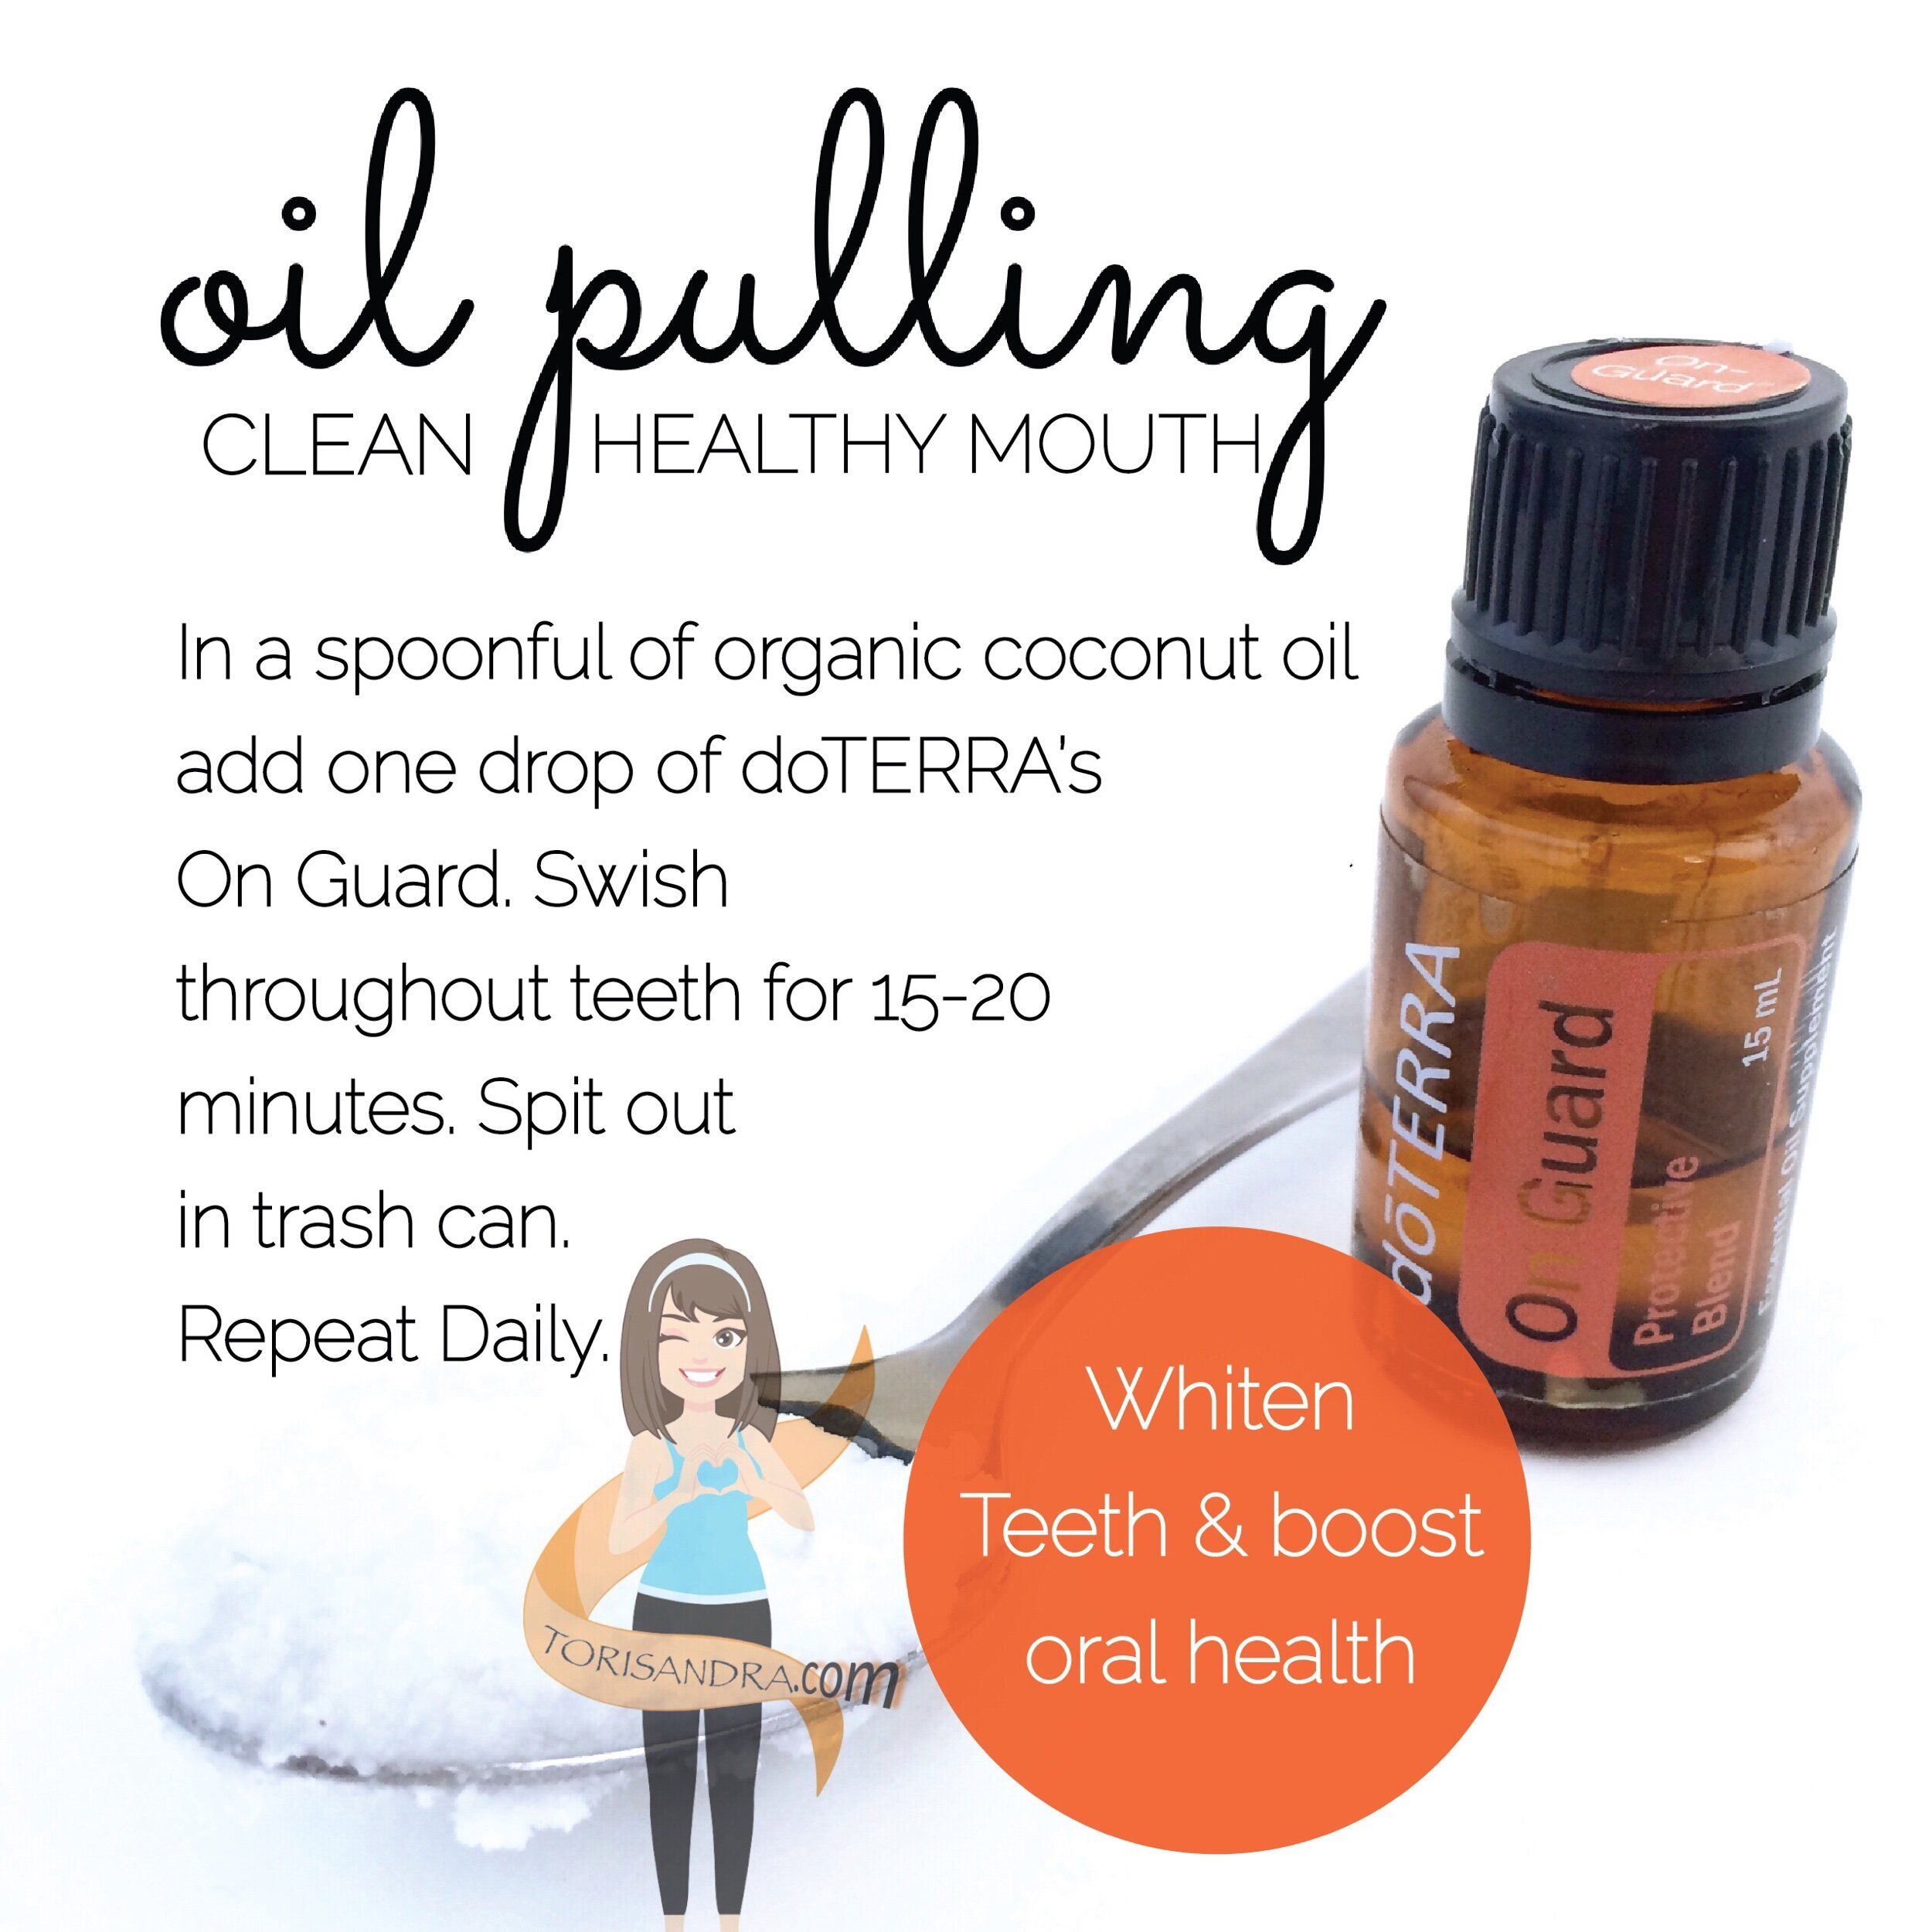 All you need in one place - All the tools you need to experience oil pulling yourself